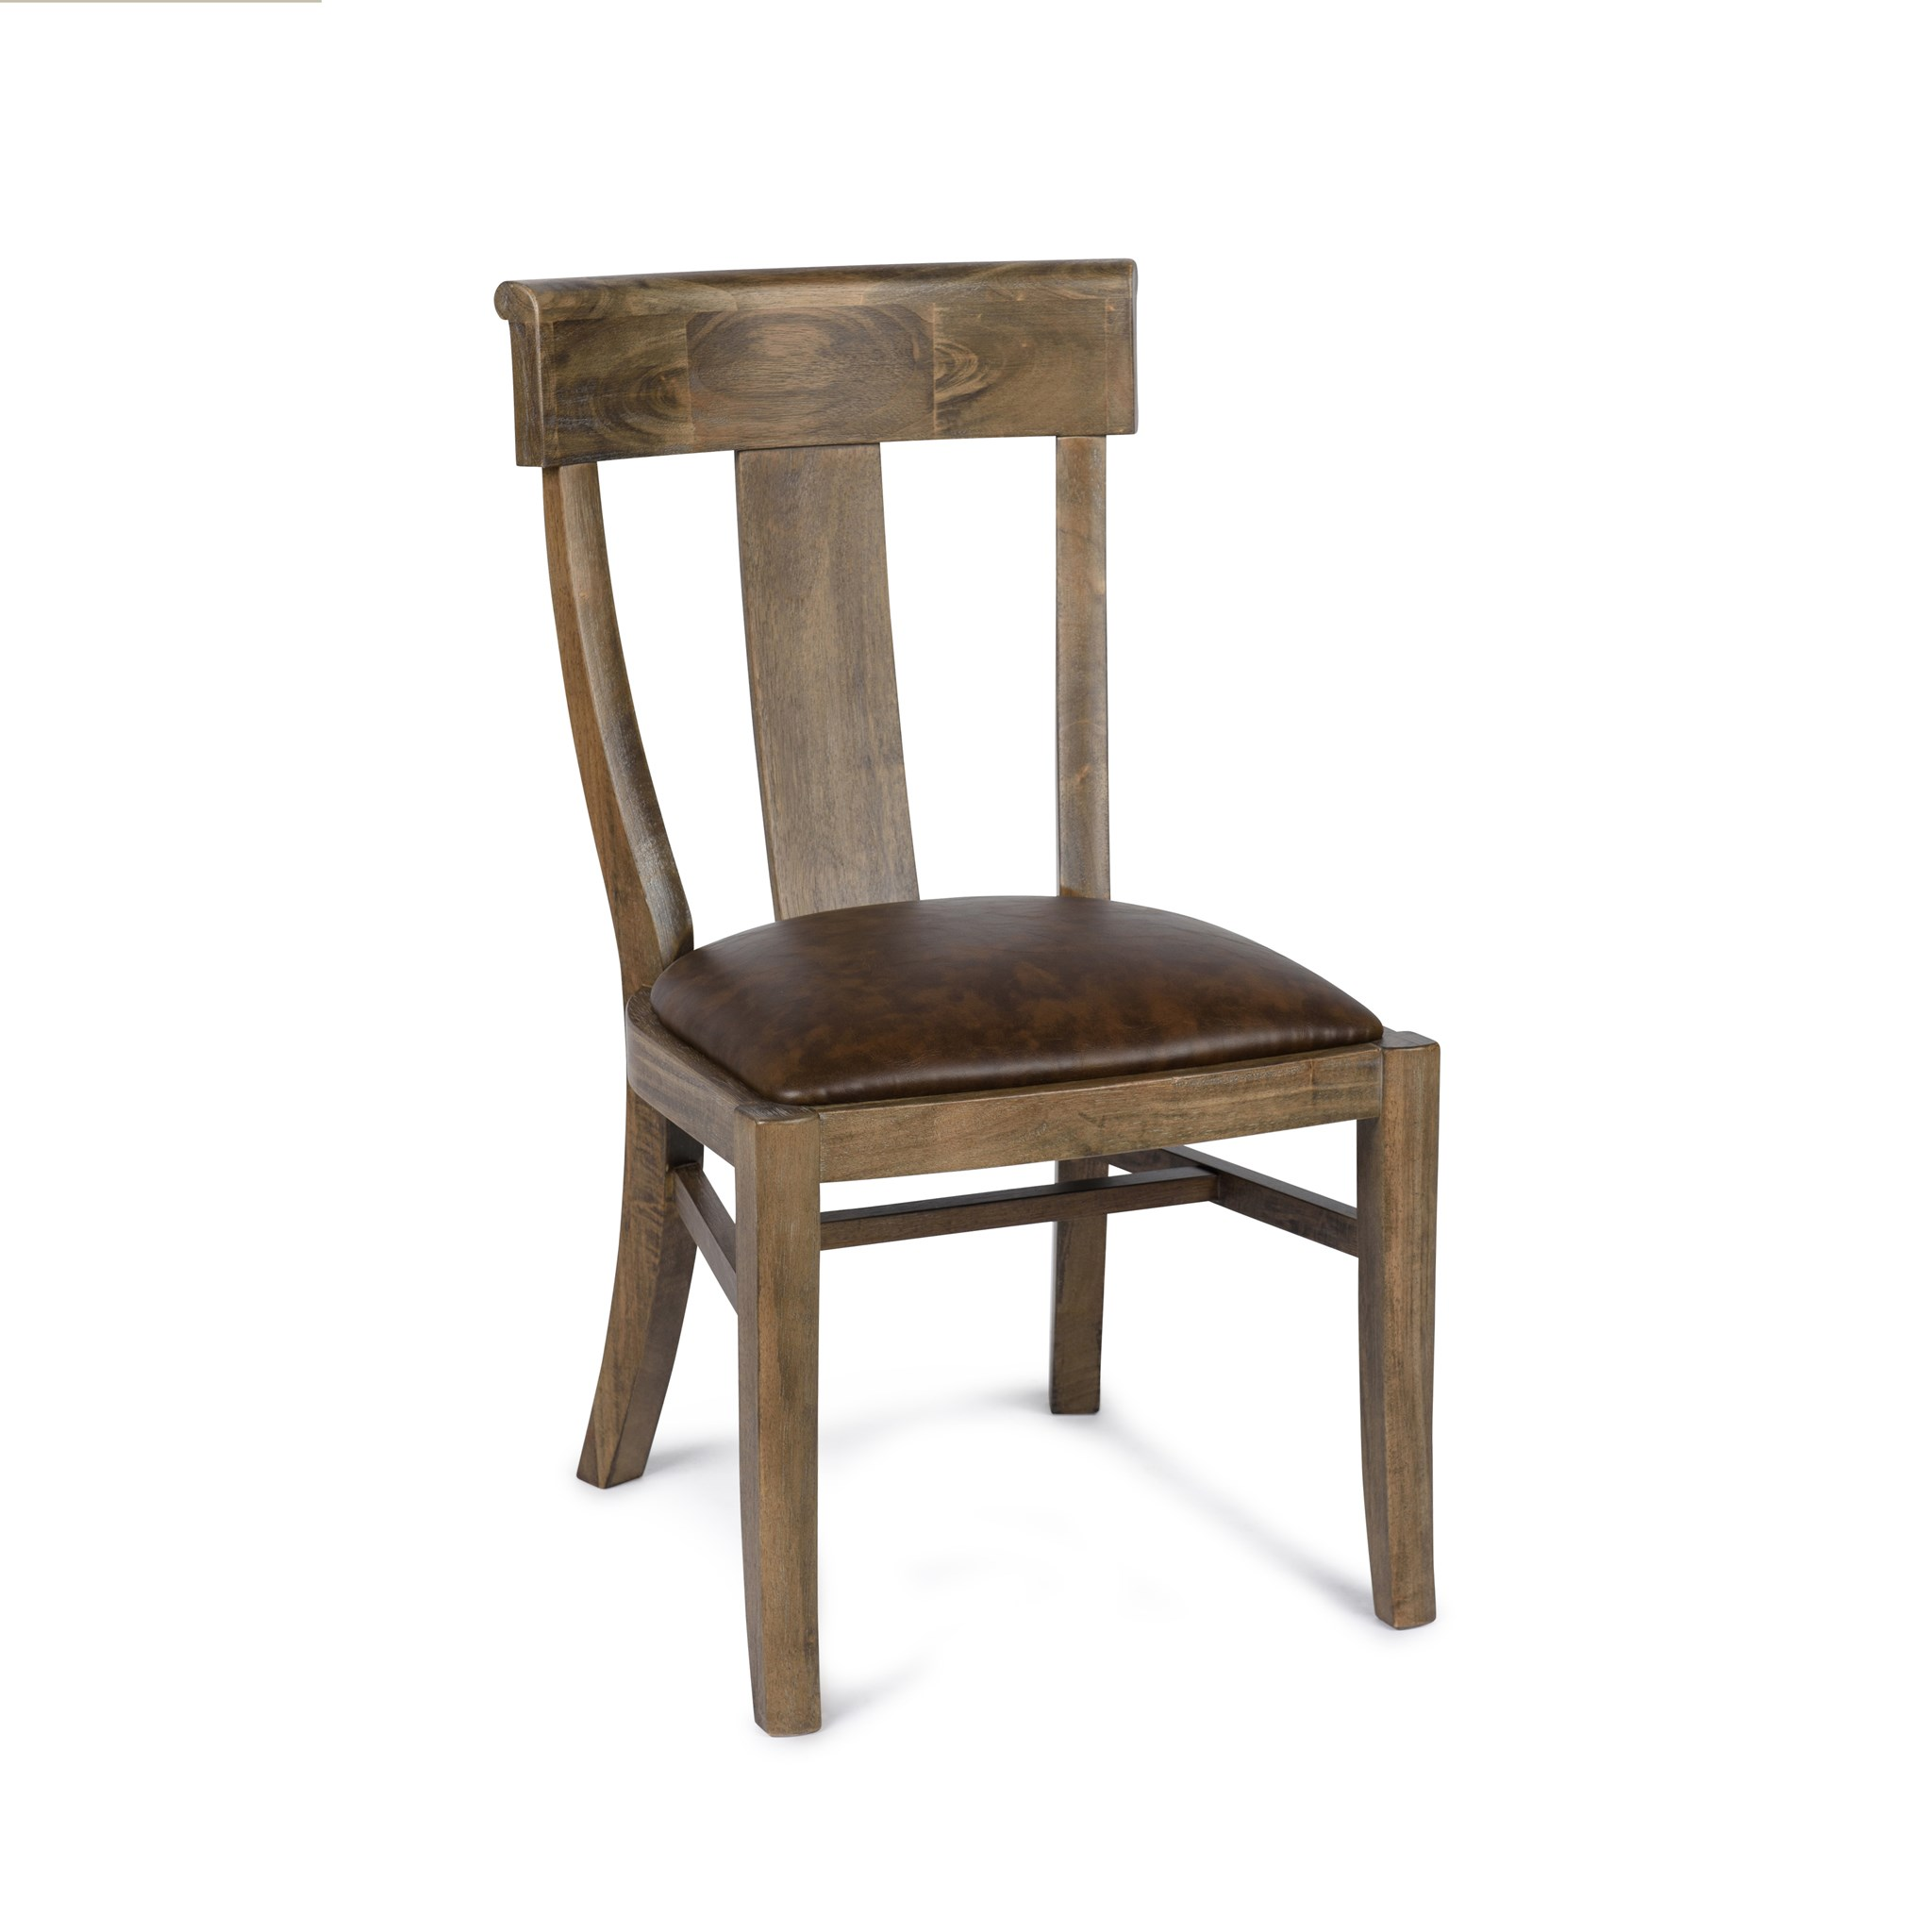 Audrey Chair Primo Timber / Driftwood